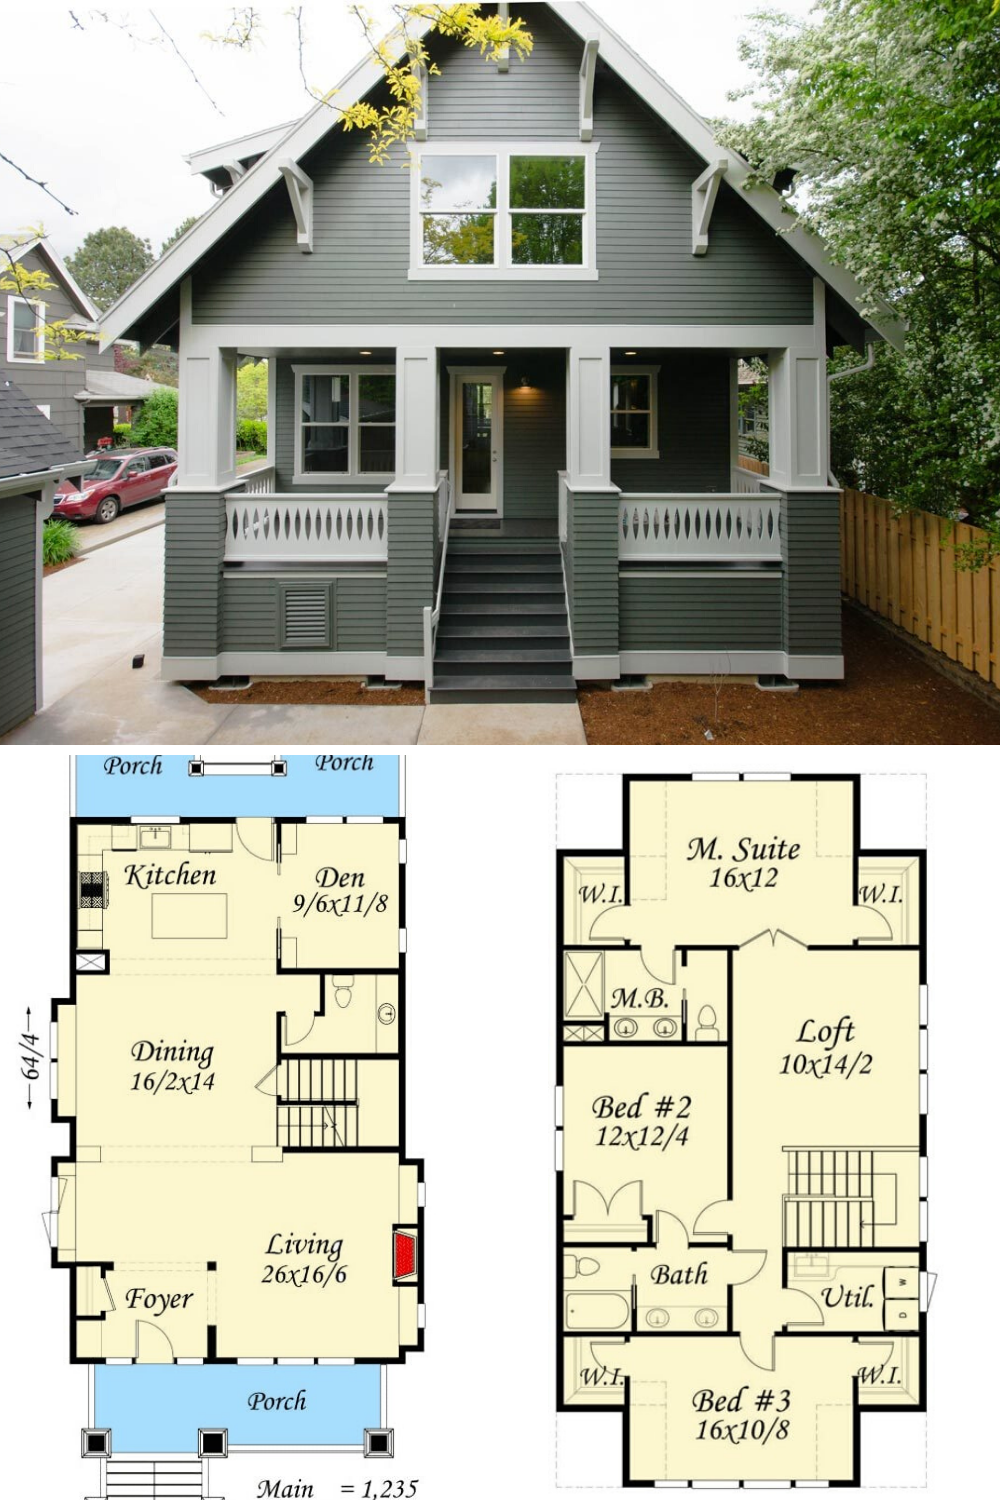 Two Story 4 Bedroom Bungalow Home Floor Plan Craftsman Bungalow House Plans Cottage Floor Plans Craftsman Bungalow Exterior